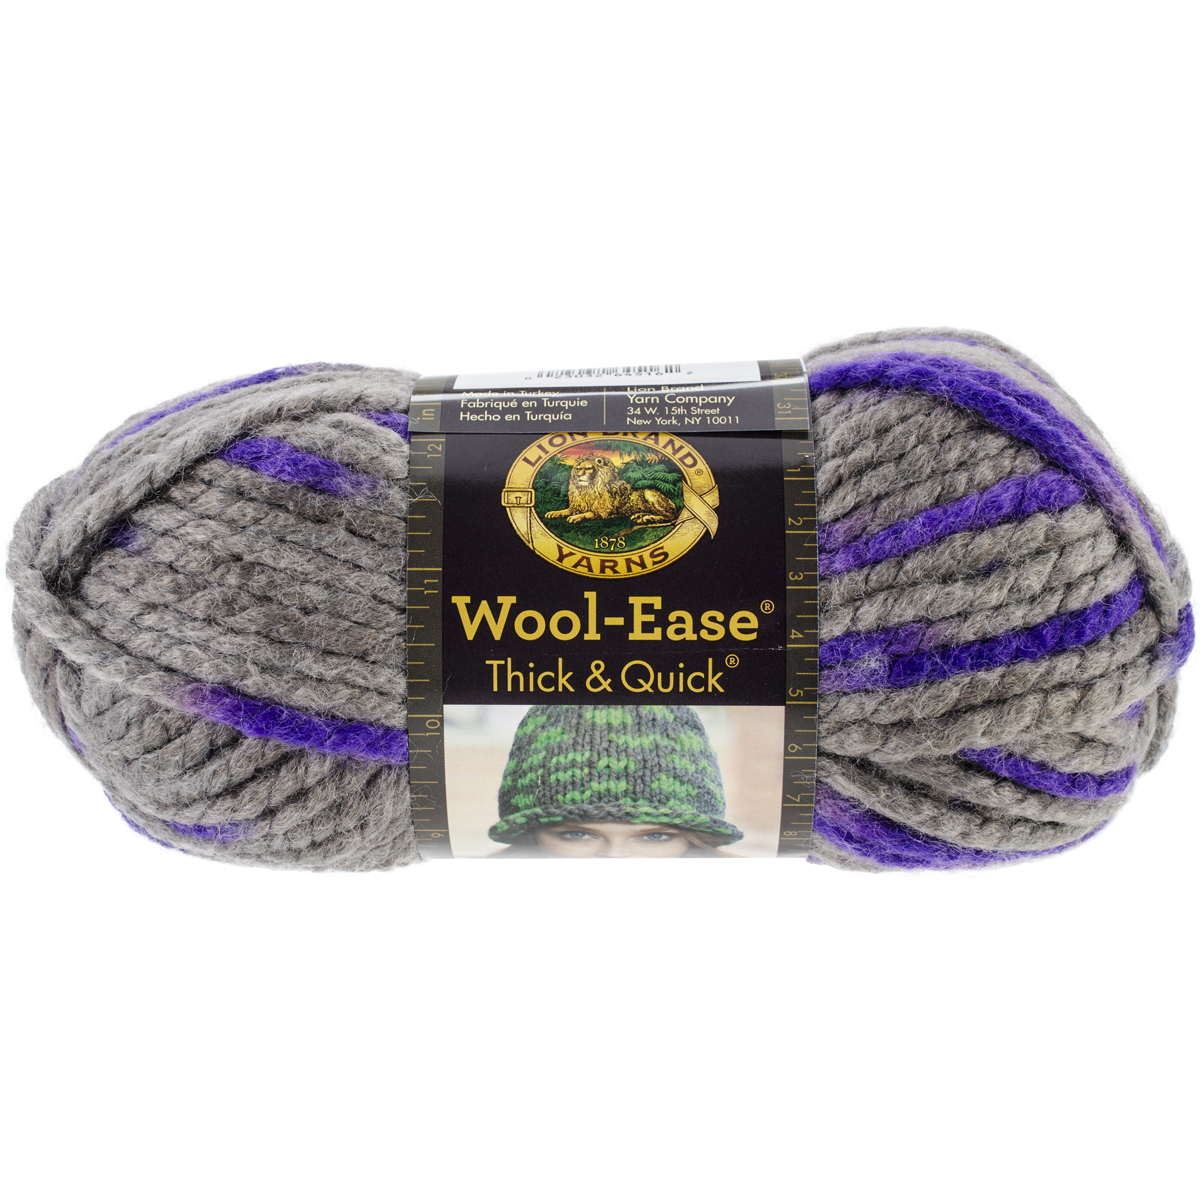 Lion Brand Wool-Ease Thick and Quick Yarn, Purple Martin Multi-Colored